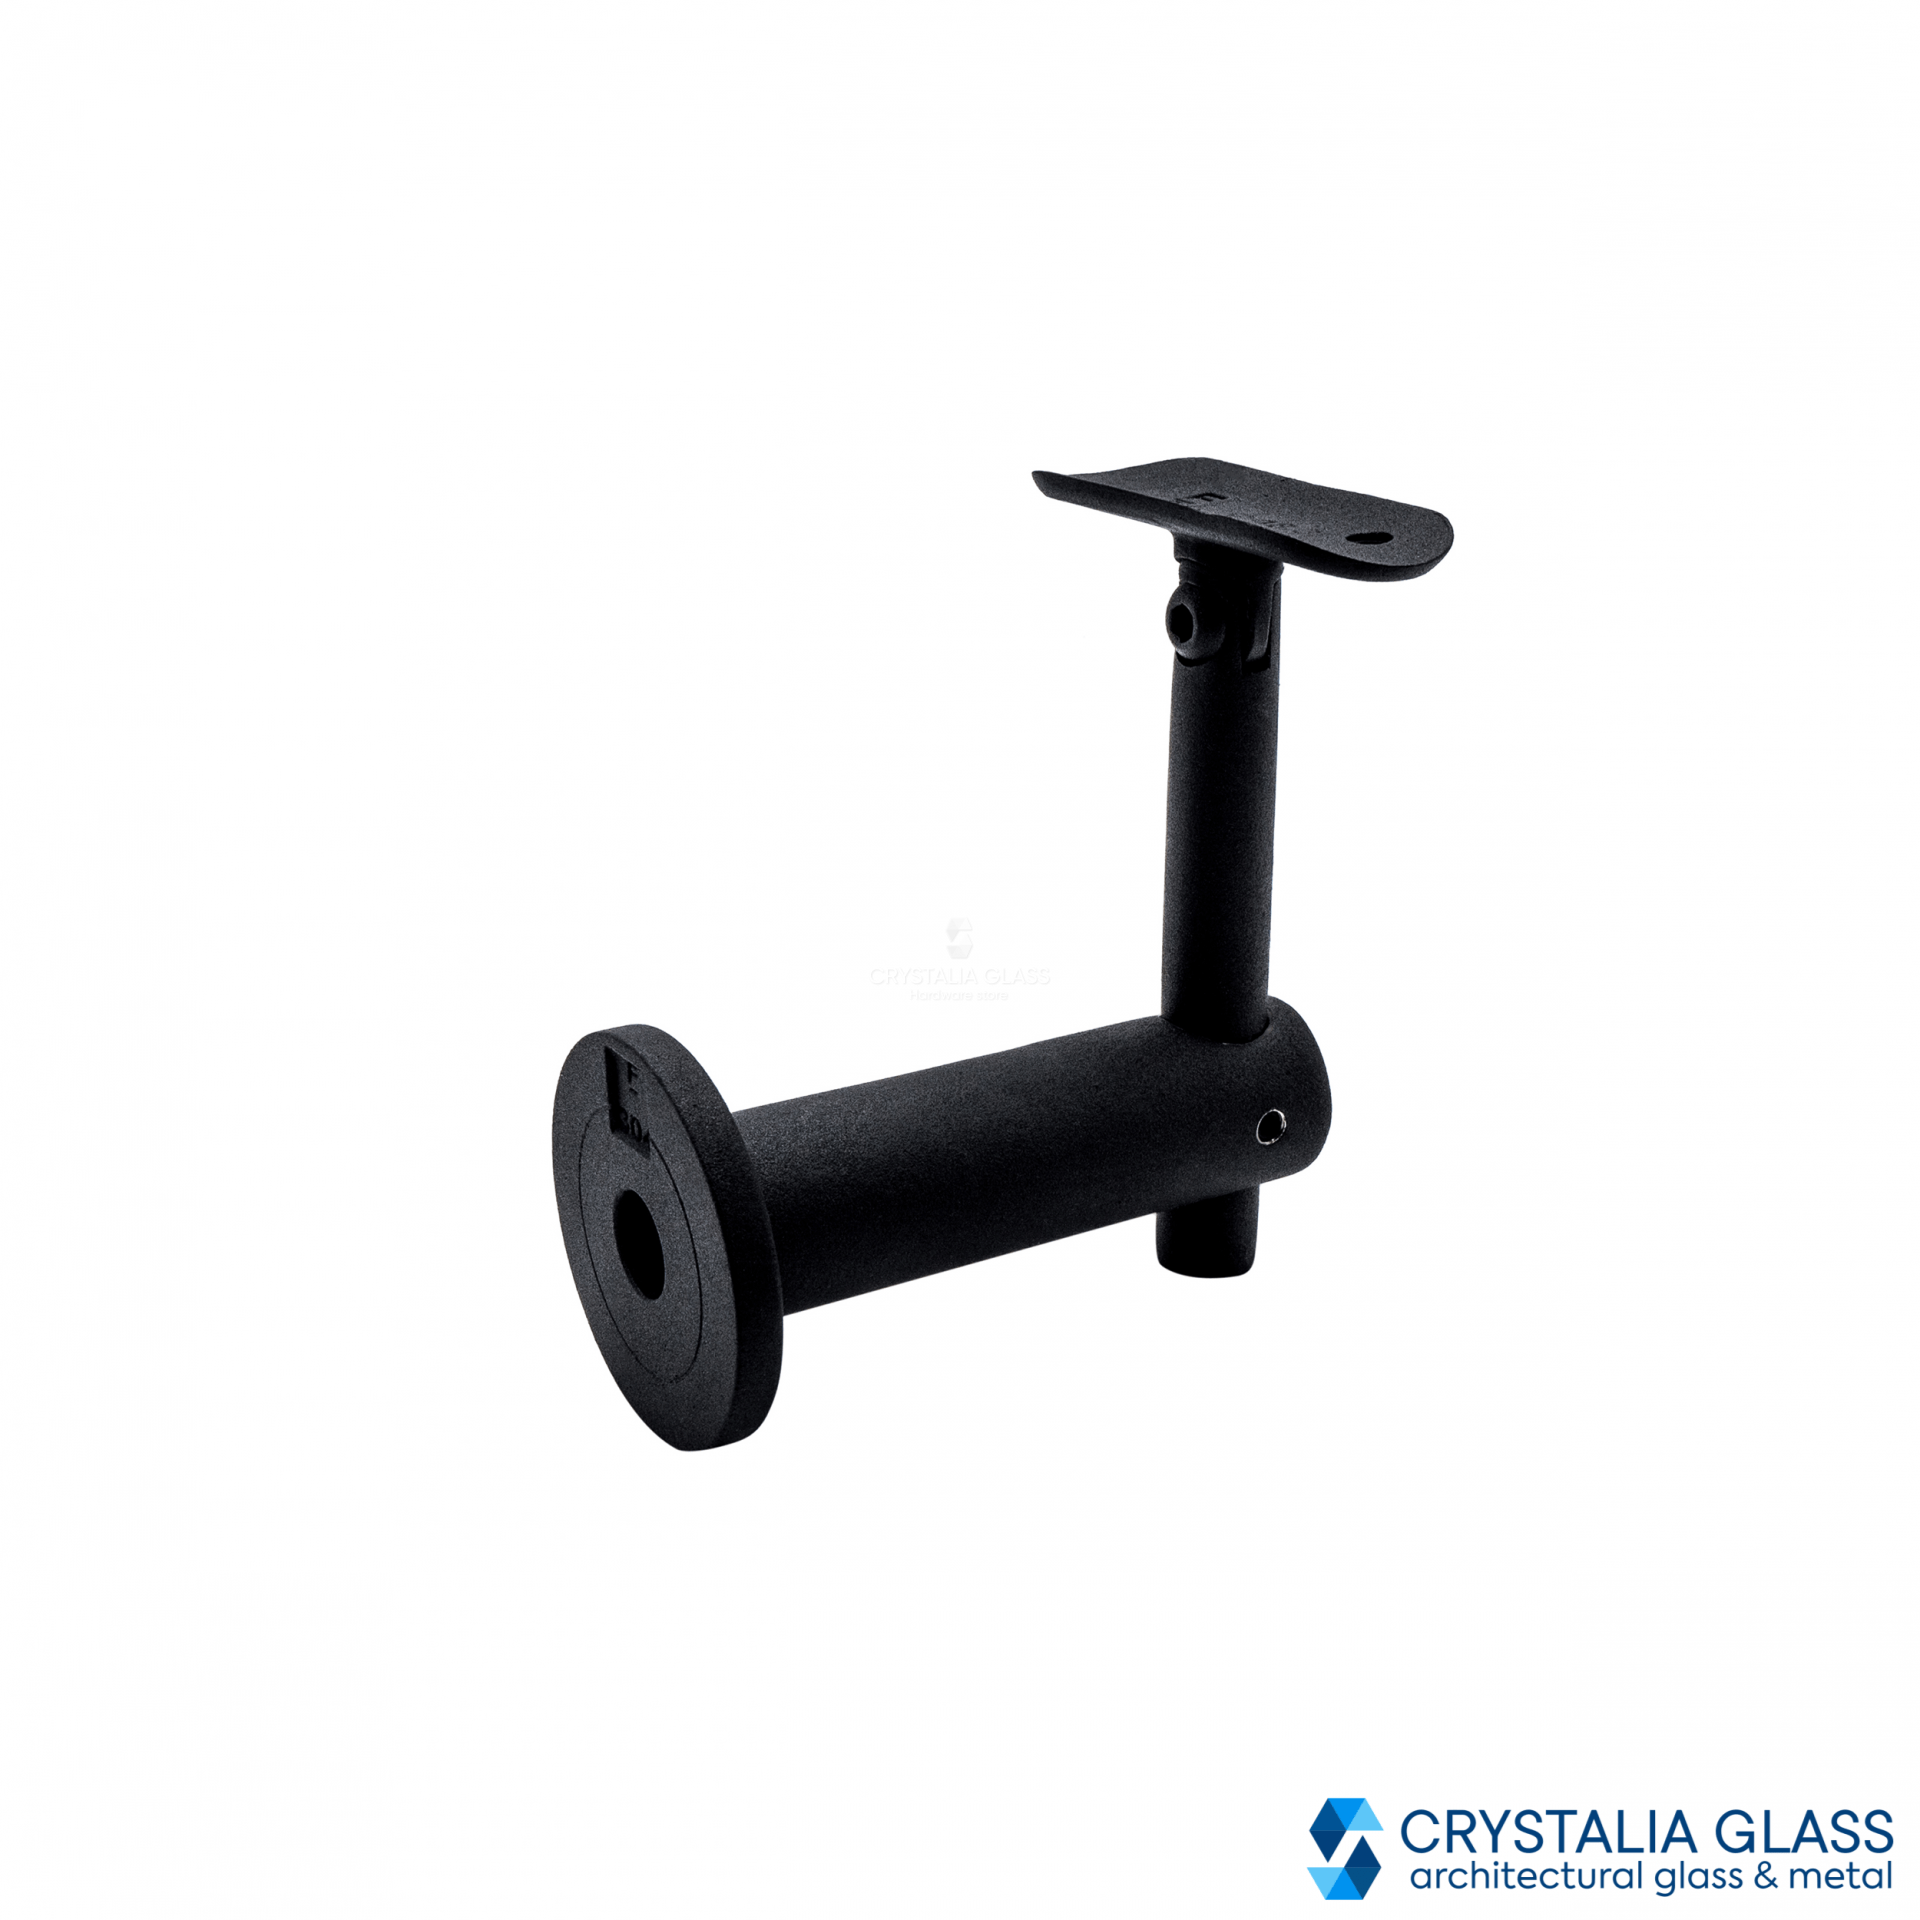 CG Black Matte Wall Mounted Hand Rail Bracket with Round Saddle